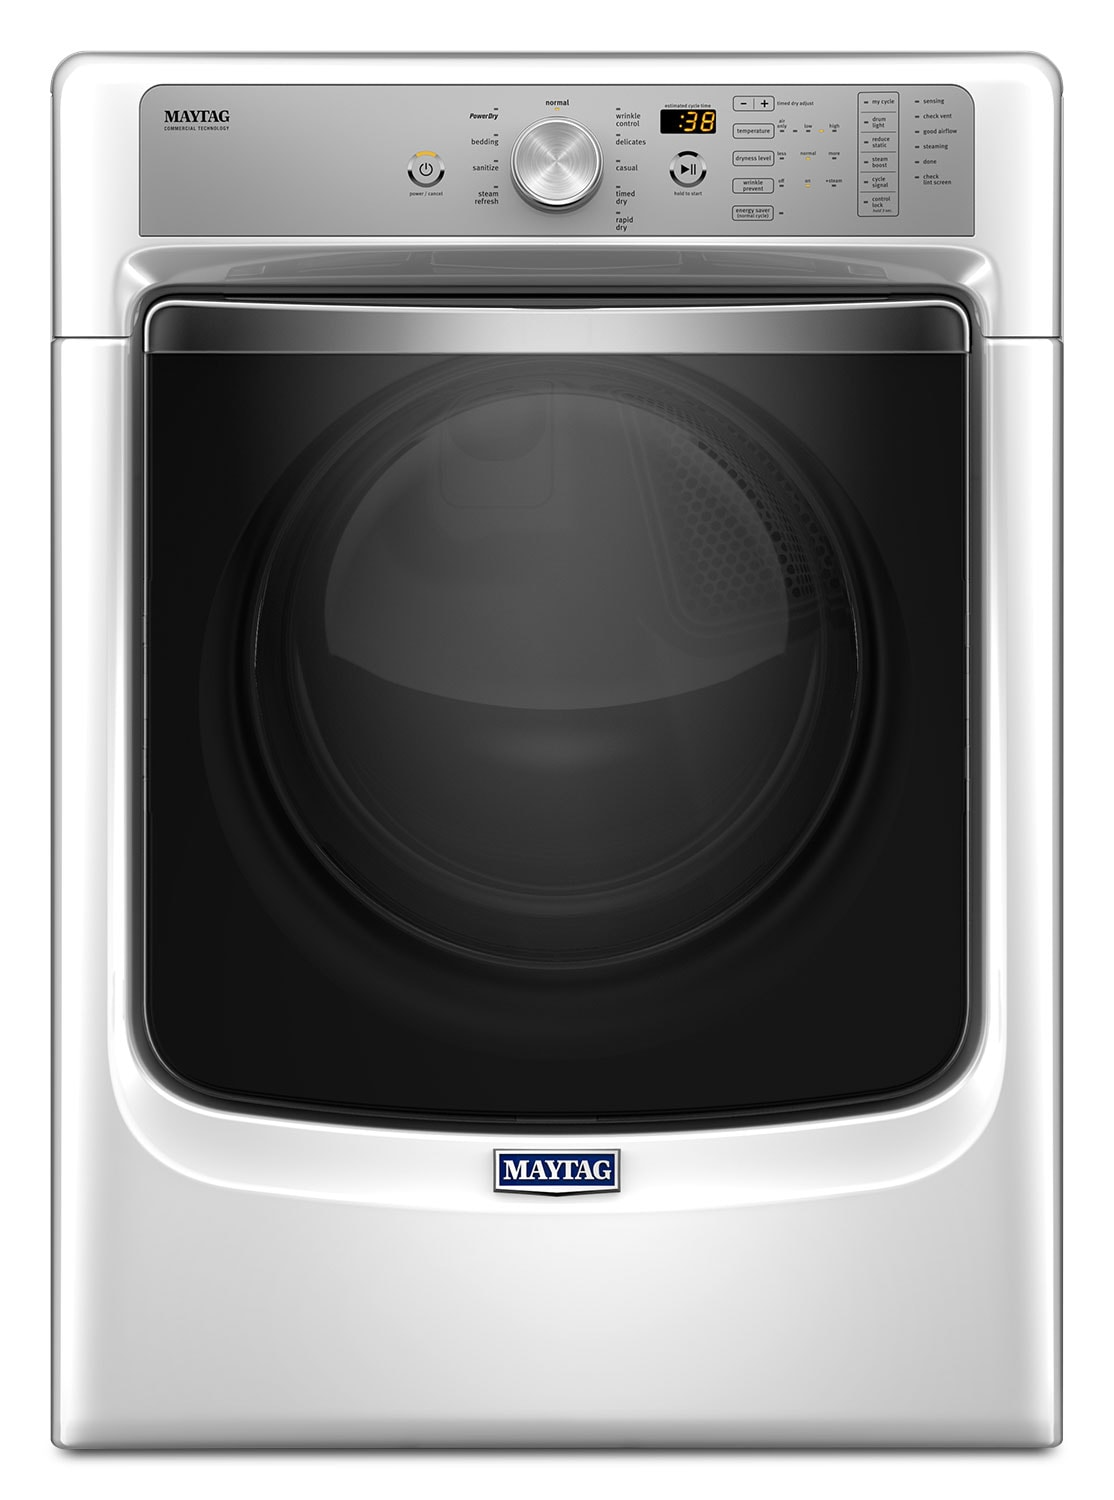 Washers and Dryers - Maytag White Dryer w/ PowerDry System (7.4 Cu. Ft.) - YMED8200FW